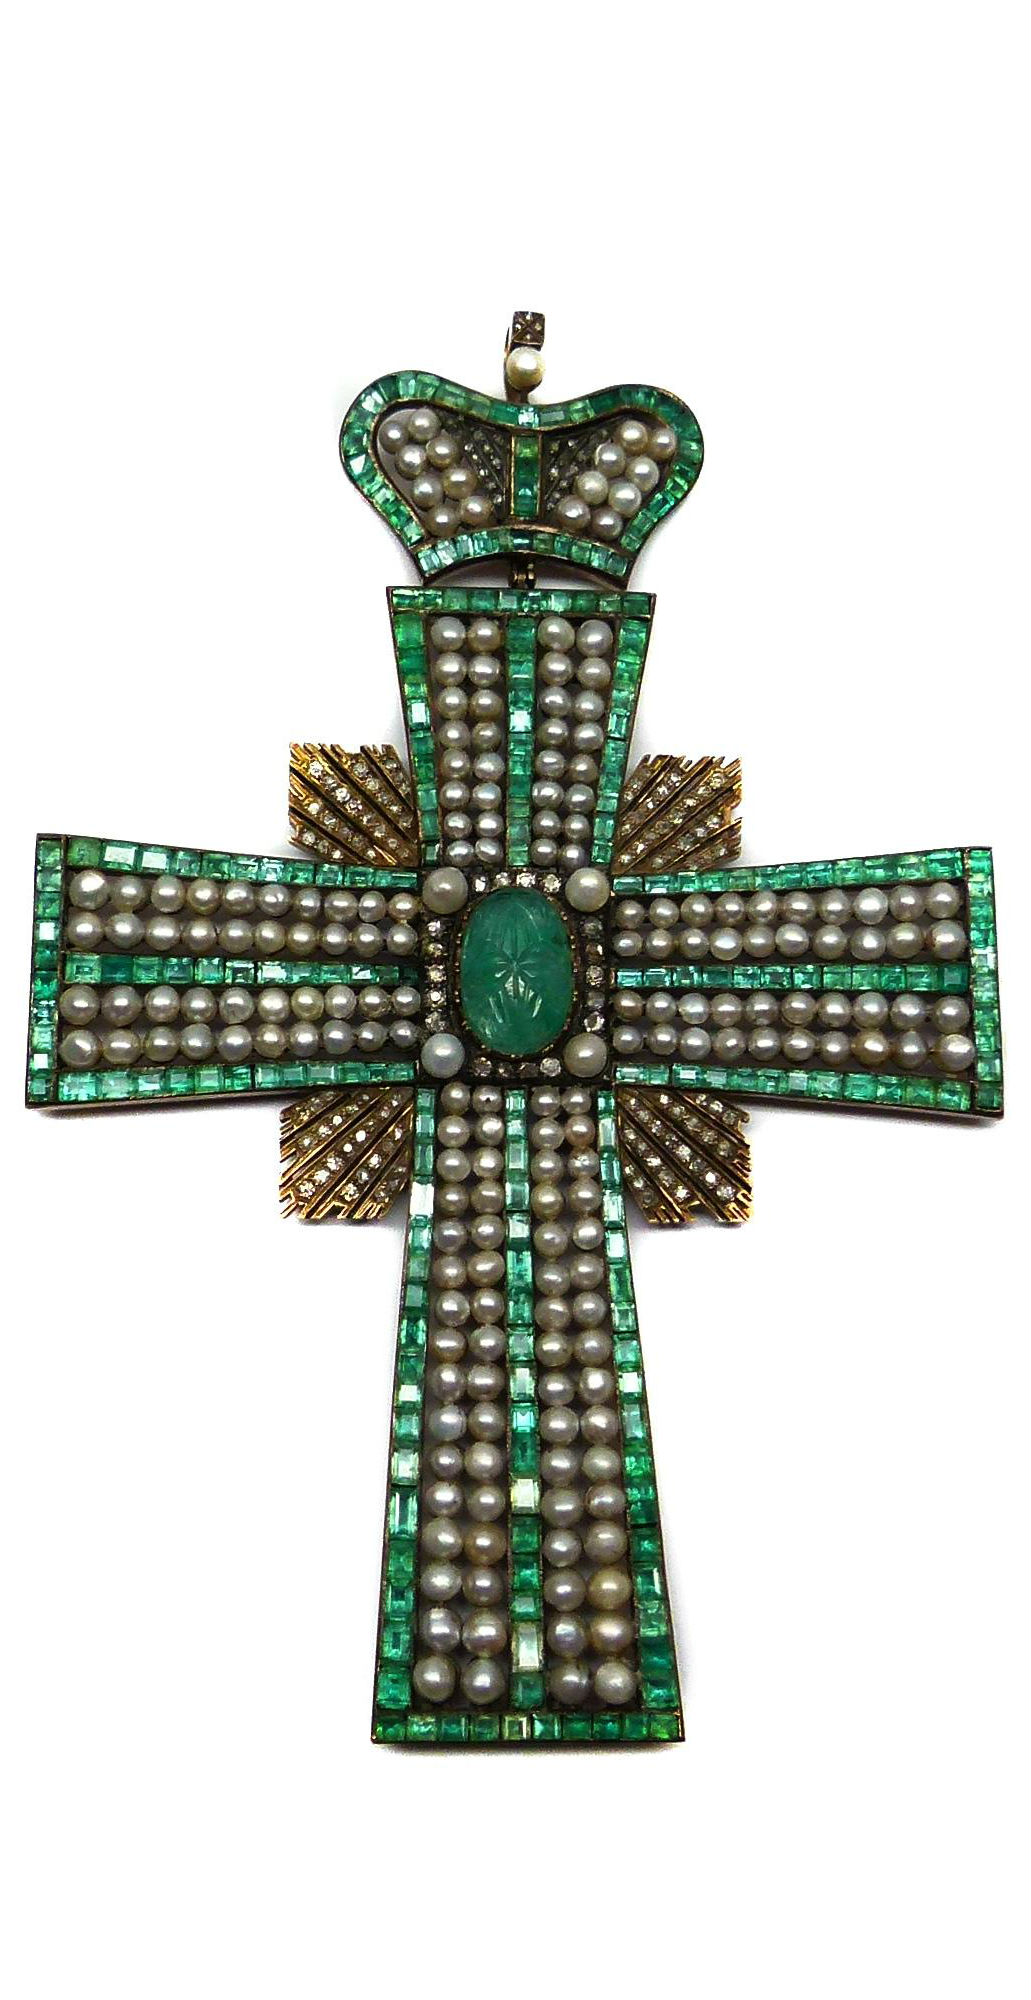 Daily jewel large 19th century emerald pearl and diamond cross large 19th century emerald pearl and diamond cross pendant with coronet surmount russian c1850 mozeypictures Image collections